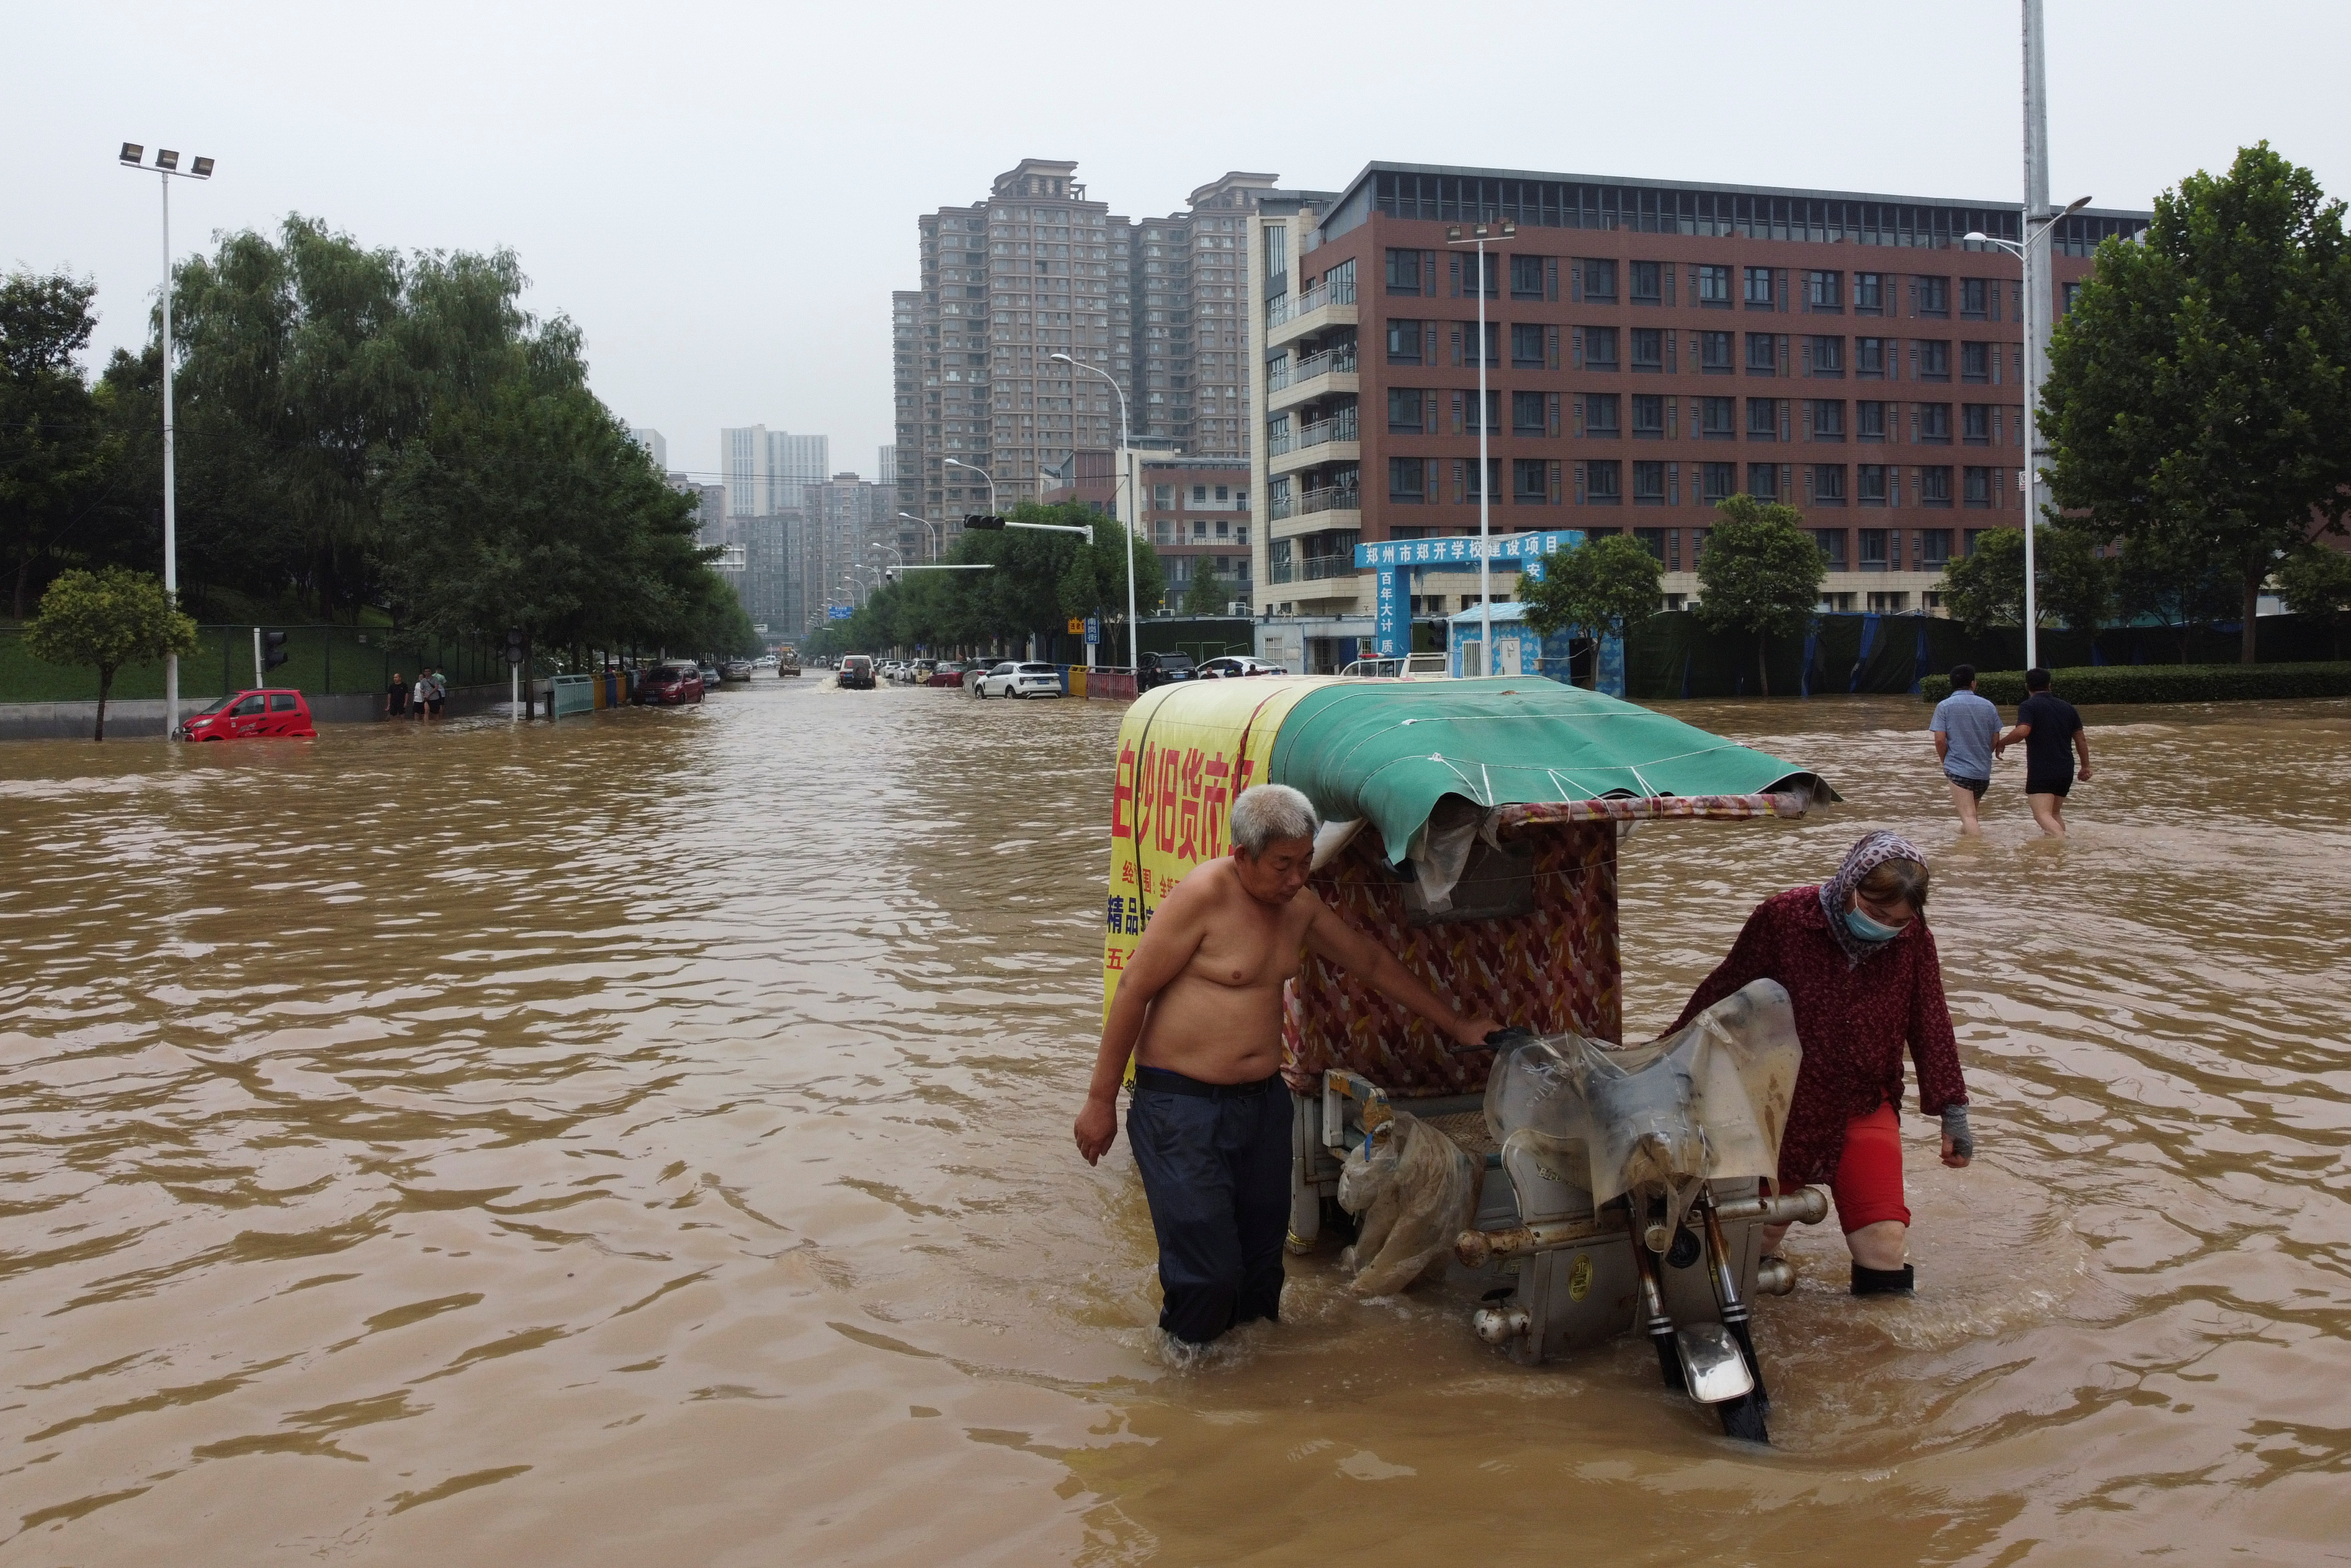 People push a vehicle through floodwaters following heavy rainfall in Zhengzhou, Henan province, China July 23, 2021. Picture taken with a drone. REUTERS/Aly Song